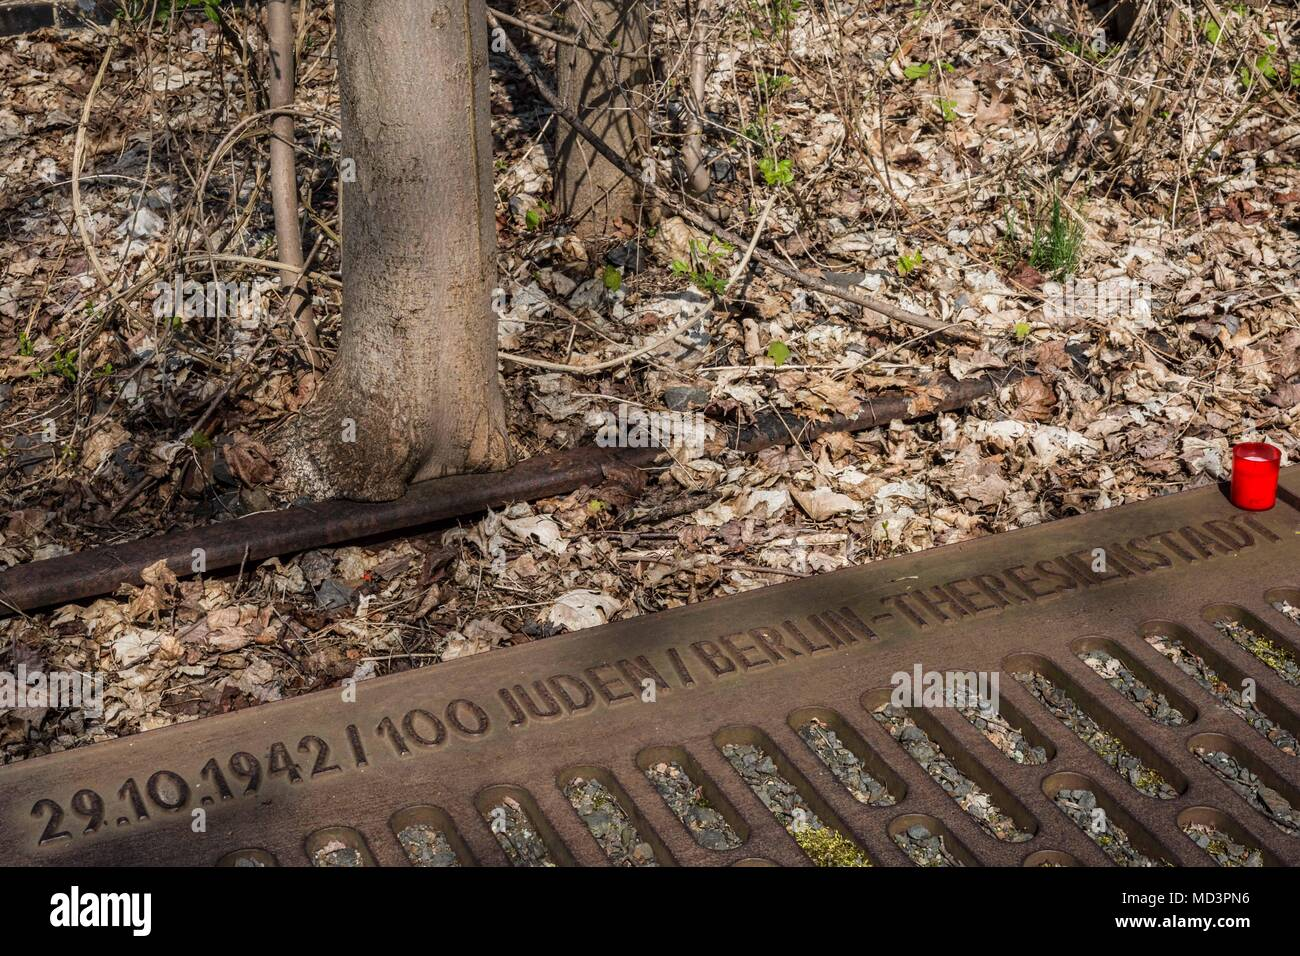 Berlin, Germany. 18th Apr, 2018. Wednesday, April 18, 2018.An unlit candle is placed on a plaque at the Gleis 17 (Track 17) Memorial at Grunewald Station in Berlin, Germany. Track 17 at the Grunewald Station was one of the major sites of deportation of the Berlin Jews during World War II. Prior to 1942, the trains from this site left mainly for the ghettos of Litzmannstadt and Warsaw. But from 1942, the trains went directly to concentration camps including Auschwitz and Thereisienstadt.Plaques with details of every deportation shipment of Jews from Berlin exist on both sides of the platf - Stock Image